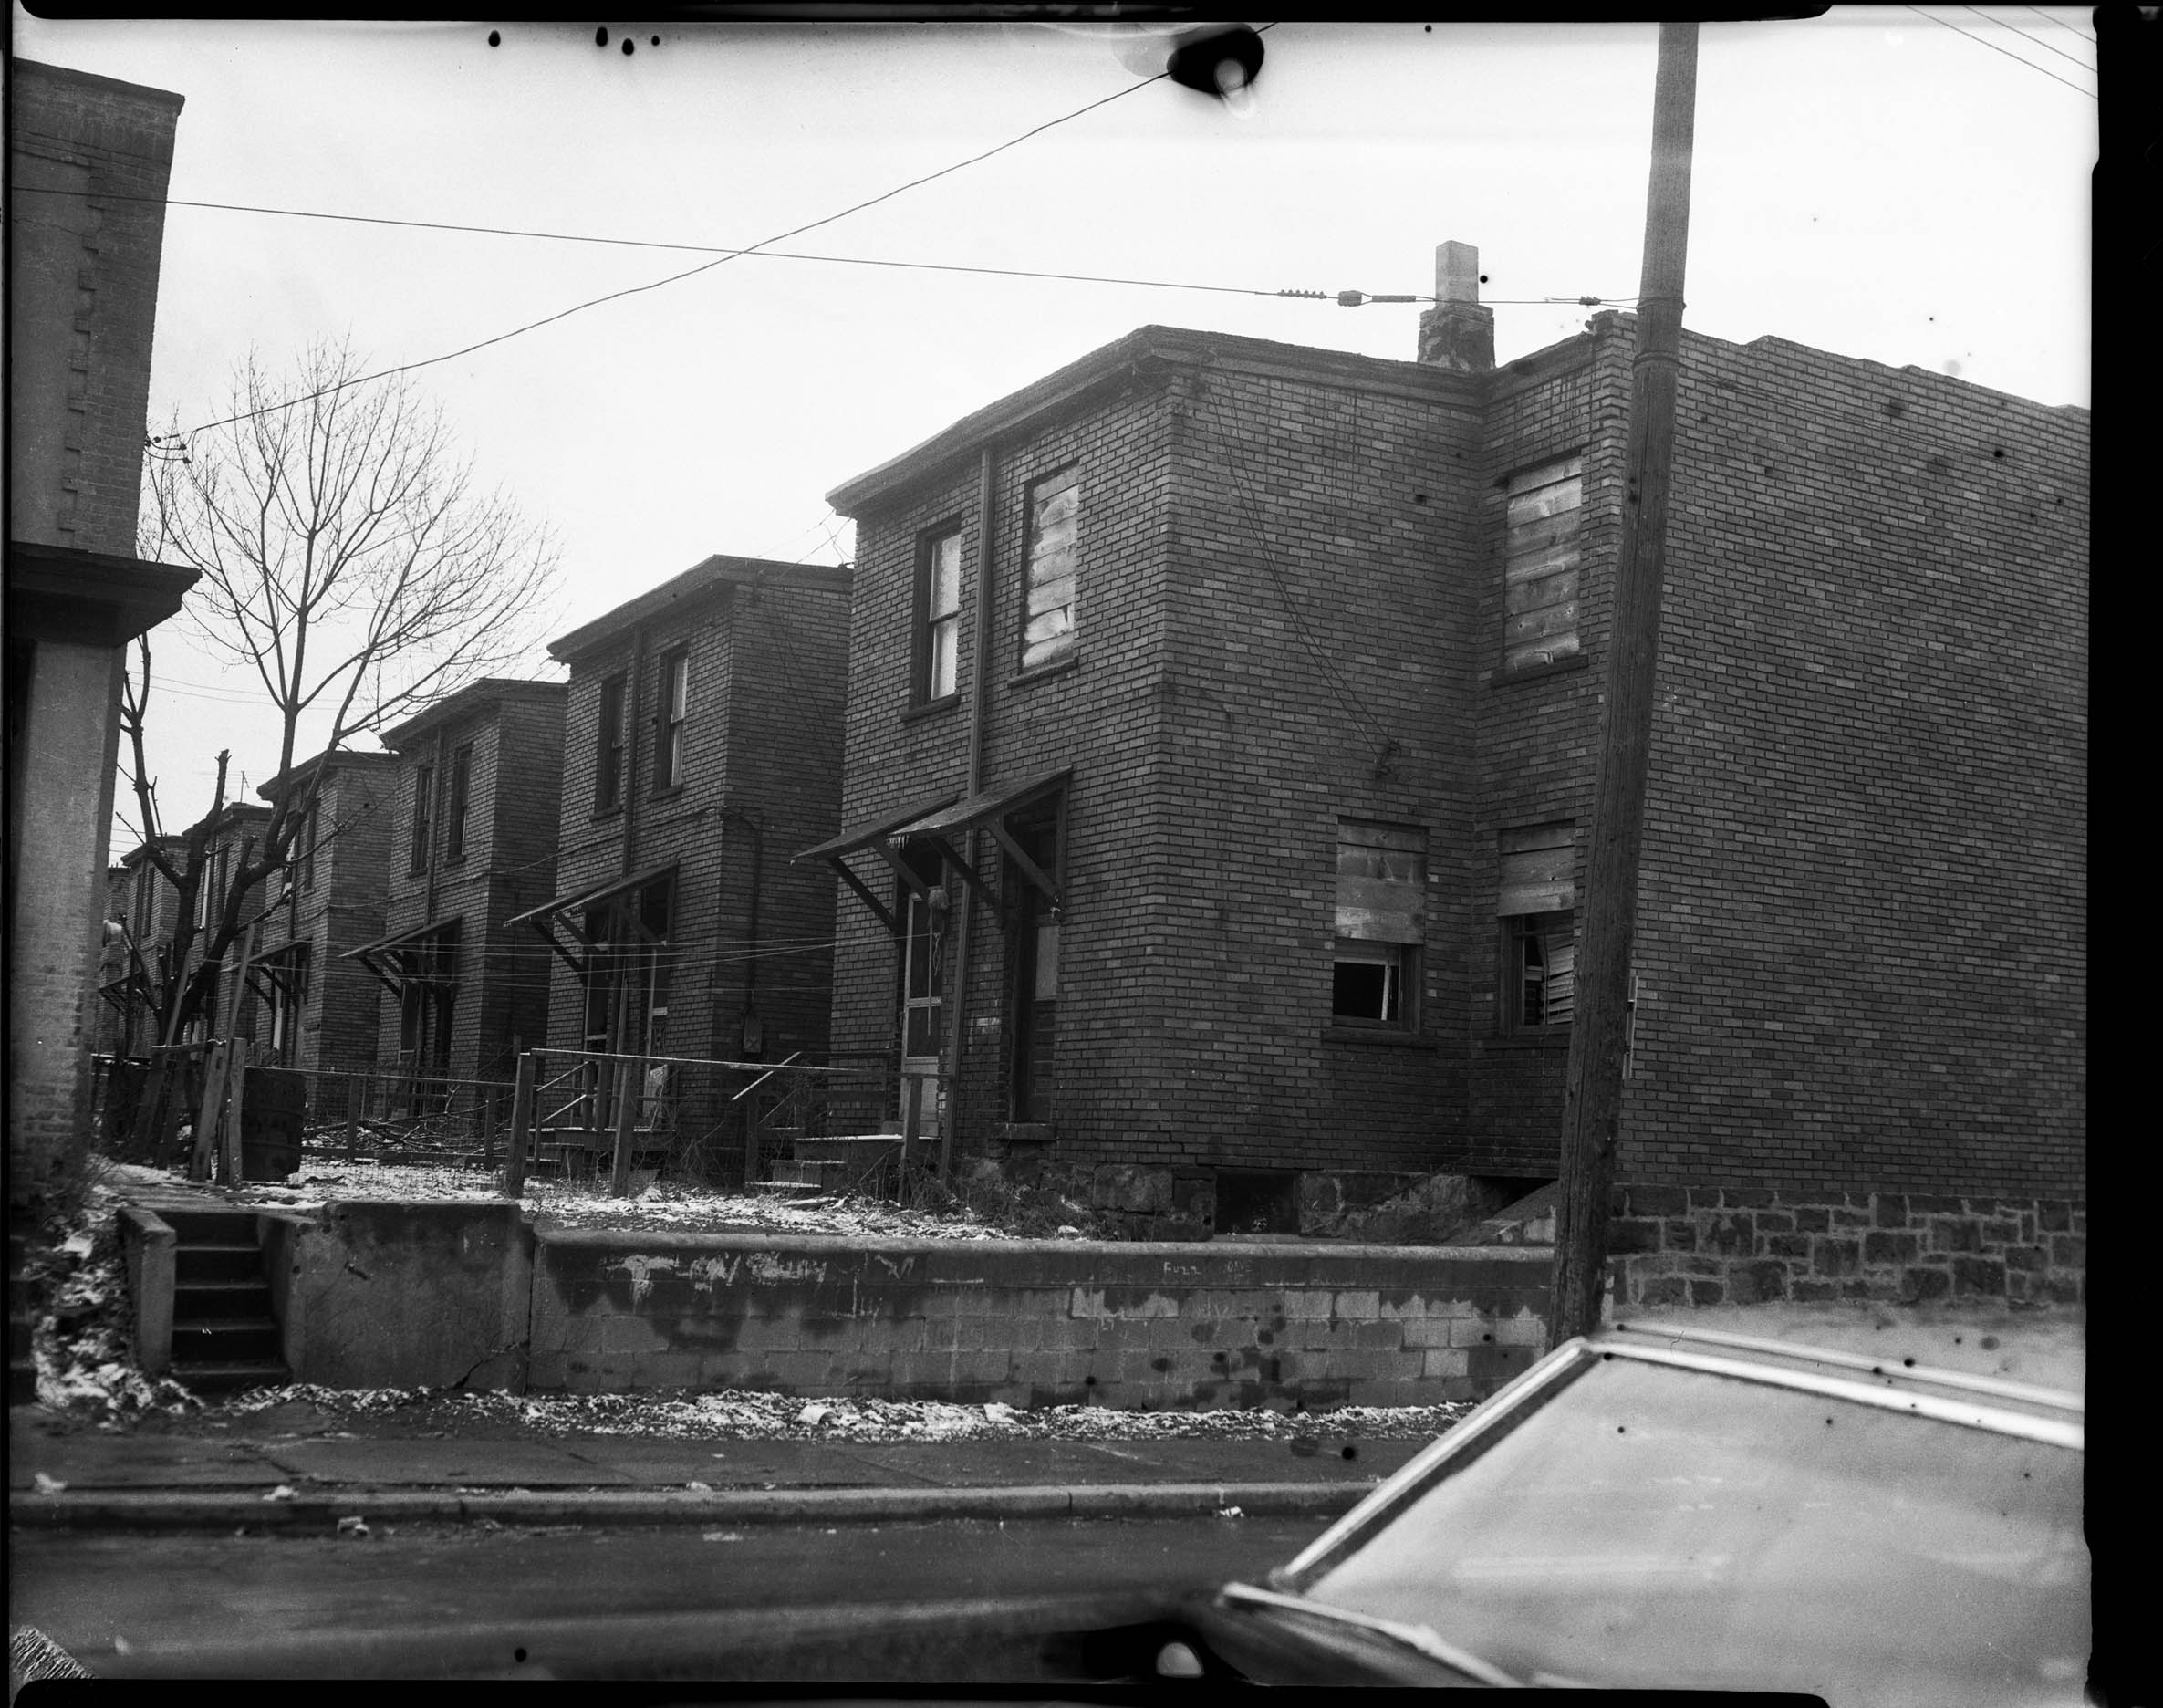 Exterior Of Rear Entrance Of Brick Row House With Awnings Over Doors And Cinder Block Wall In Back Yard Of End Unit Possibly Susquehanna Street Cmoa Collection